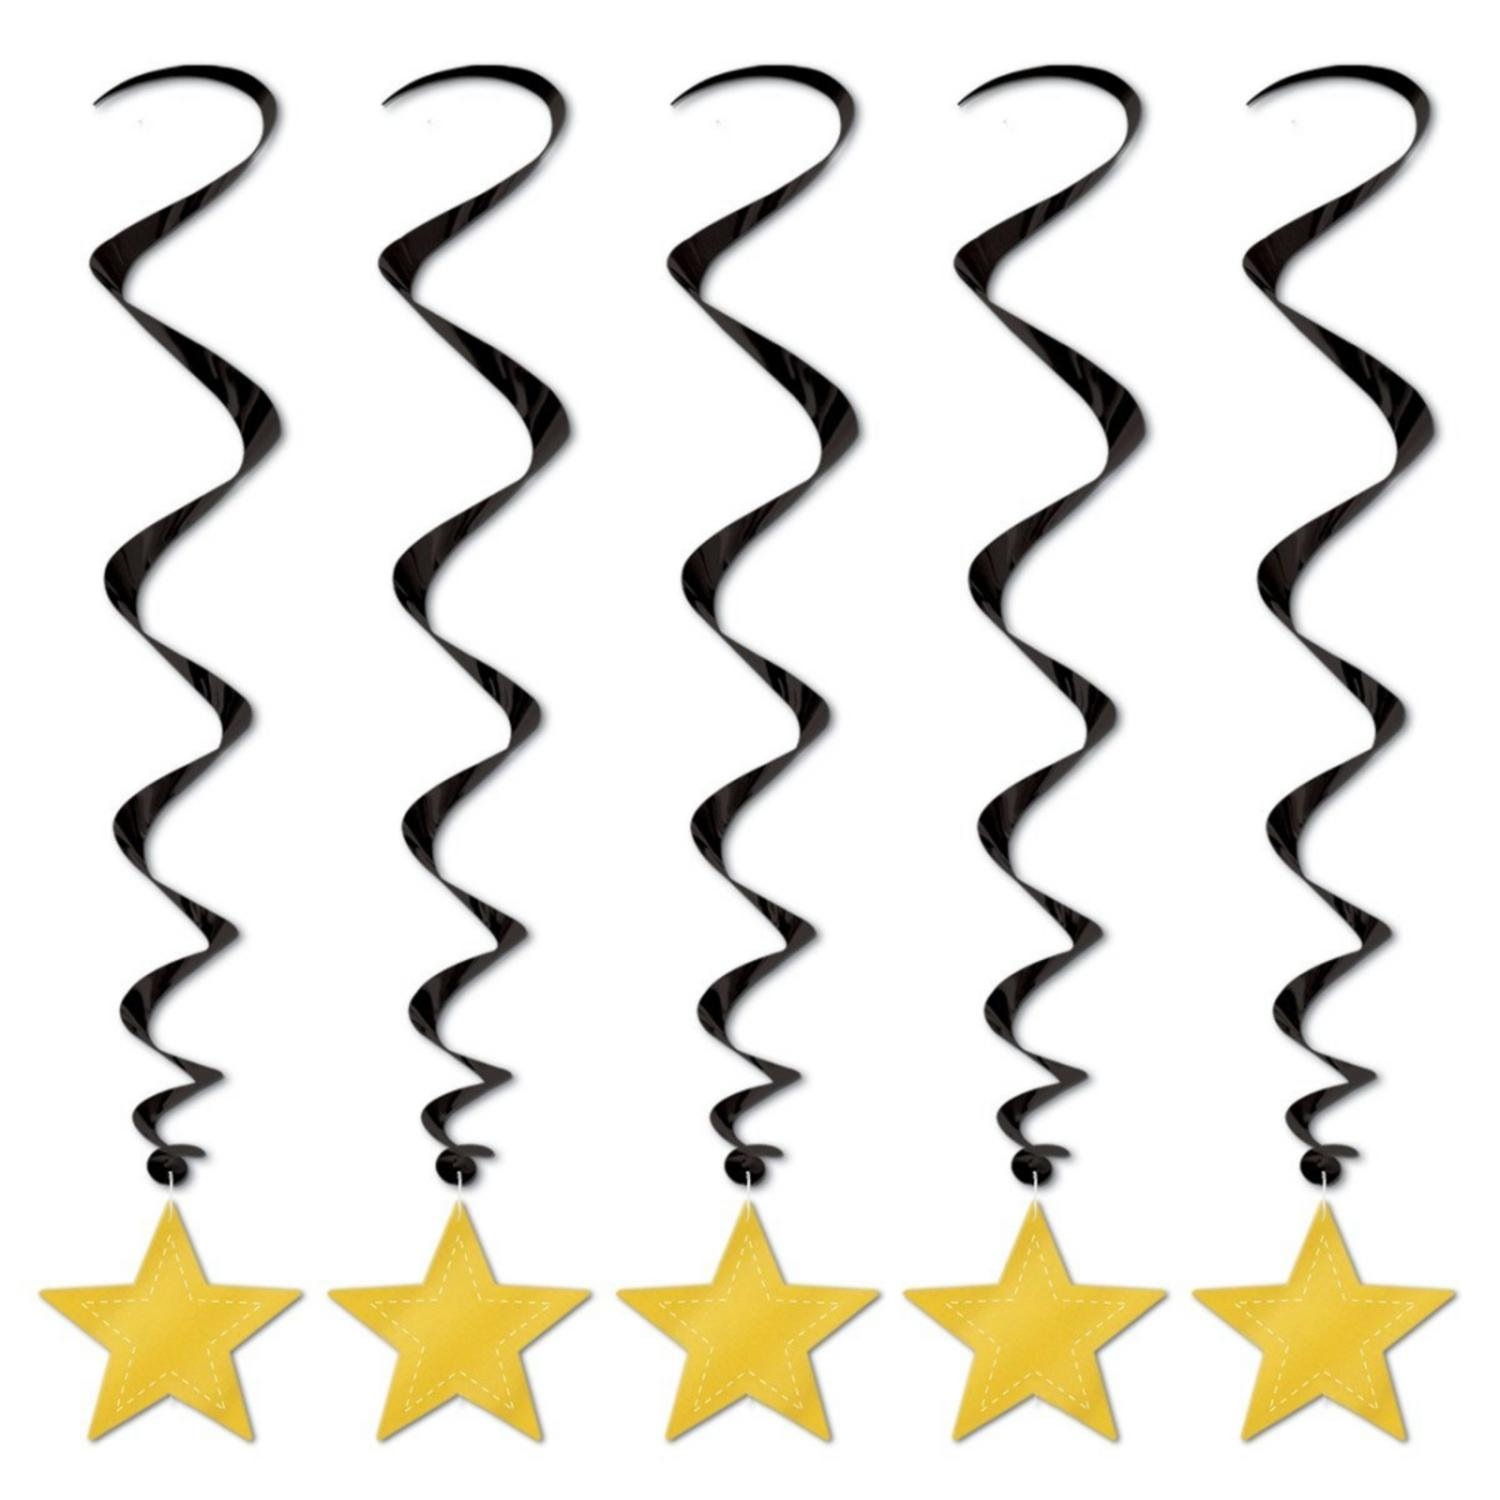 Pack of 30 Metallic Black and Gold Star Dizzy Dangler Hanging Party Decorations 36""